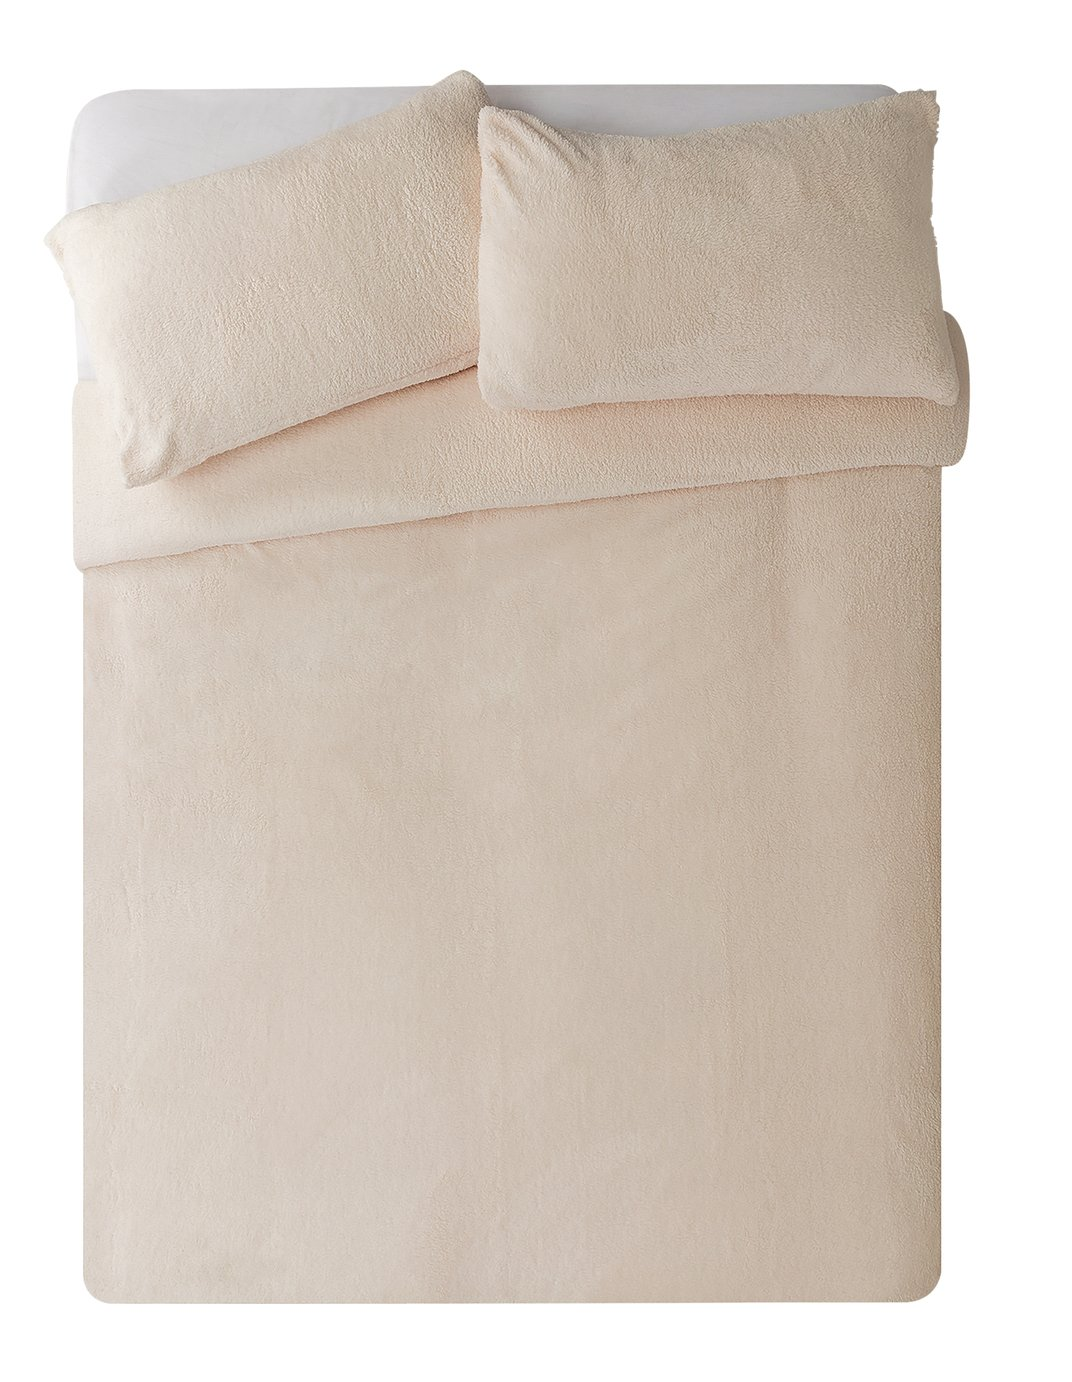 Argos Home Cream Fleece Bedding Set - Kingsize